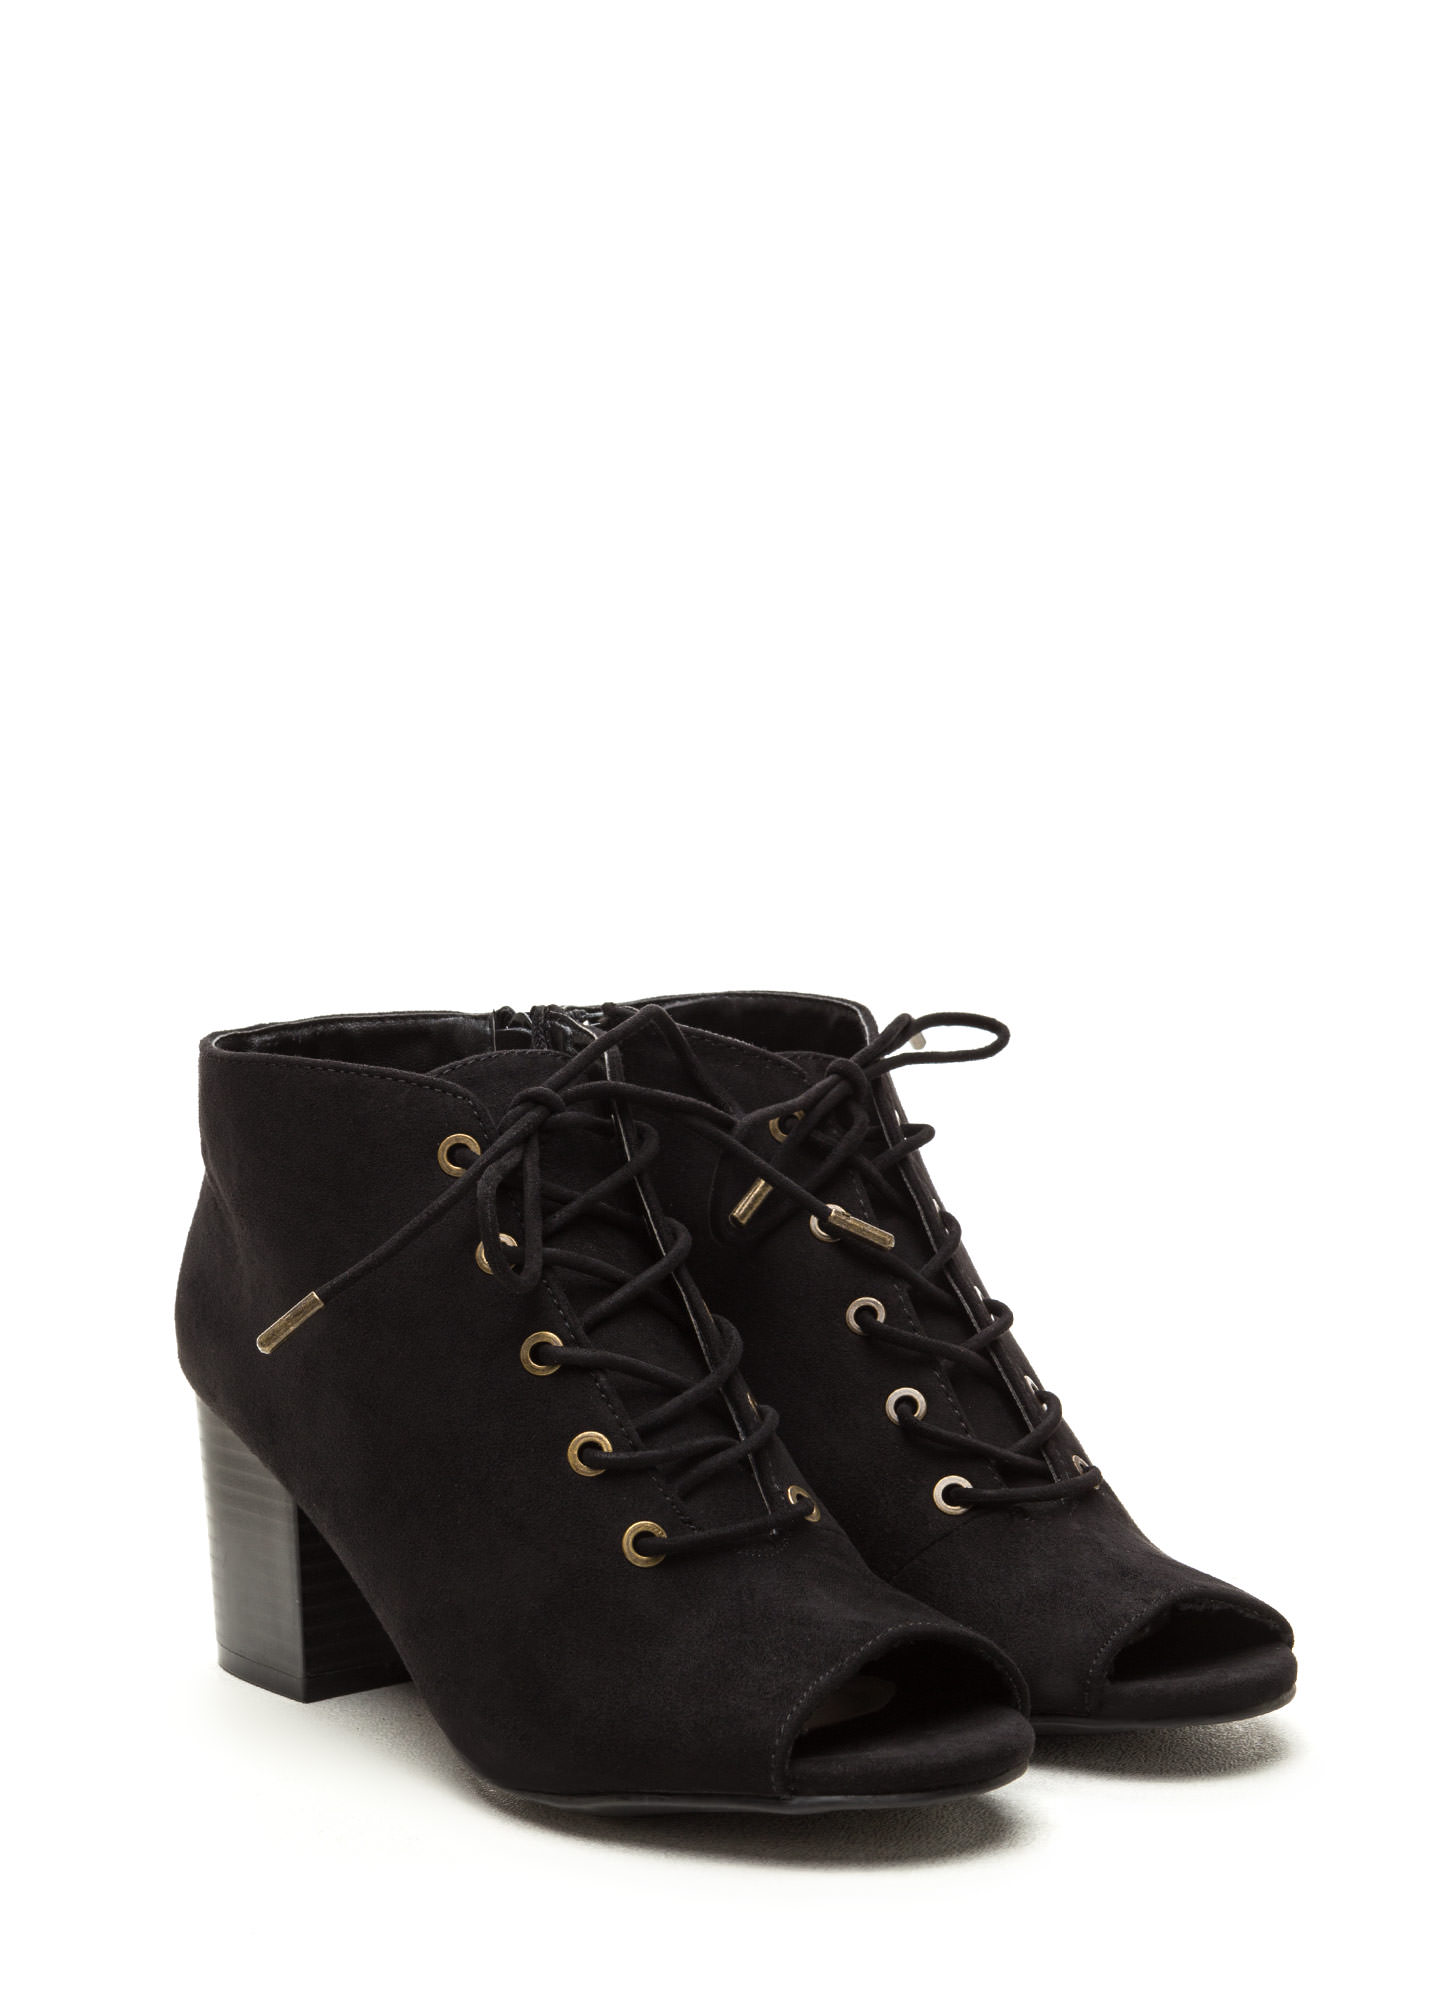 Day After Day Chunky Lace-Up Booties BLACK